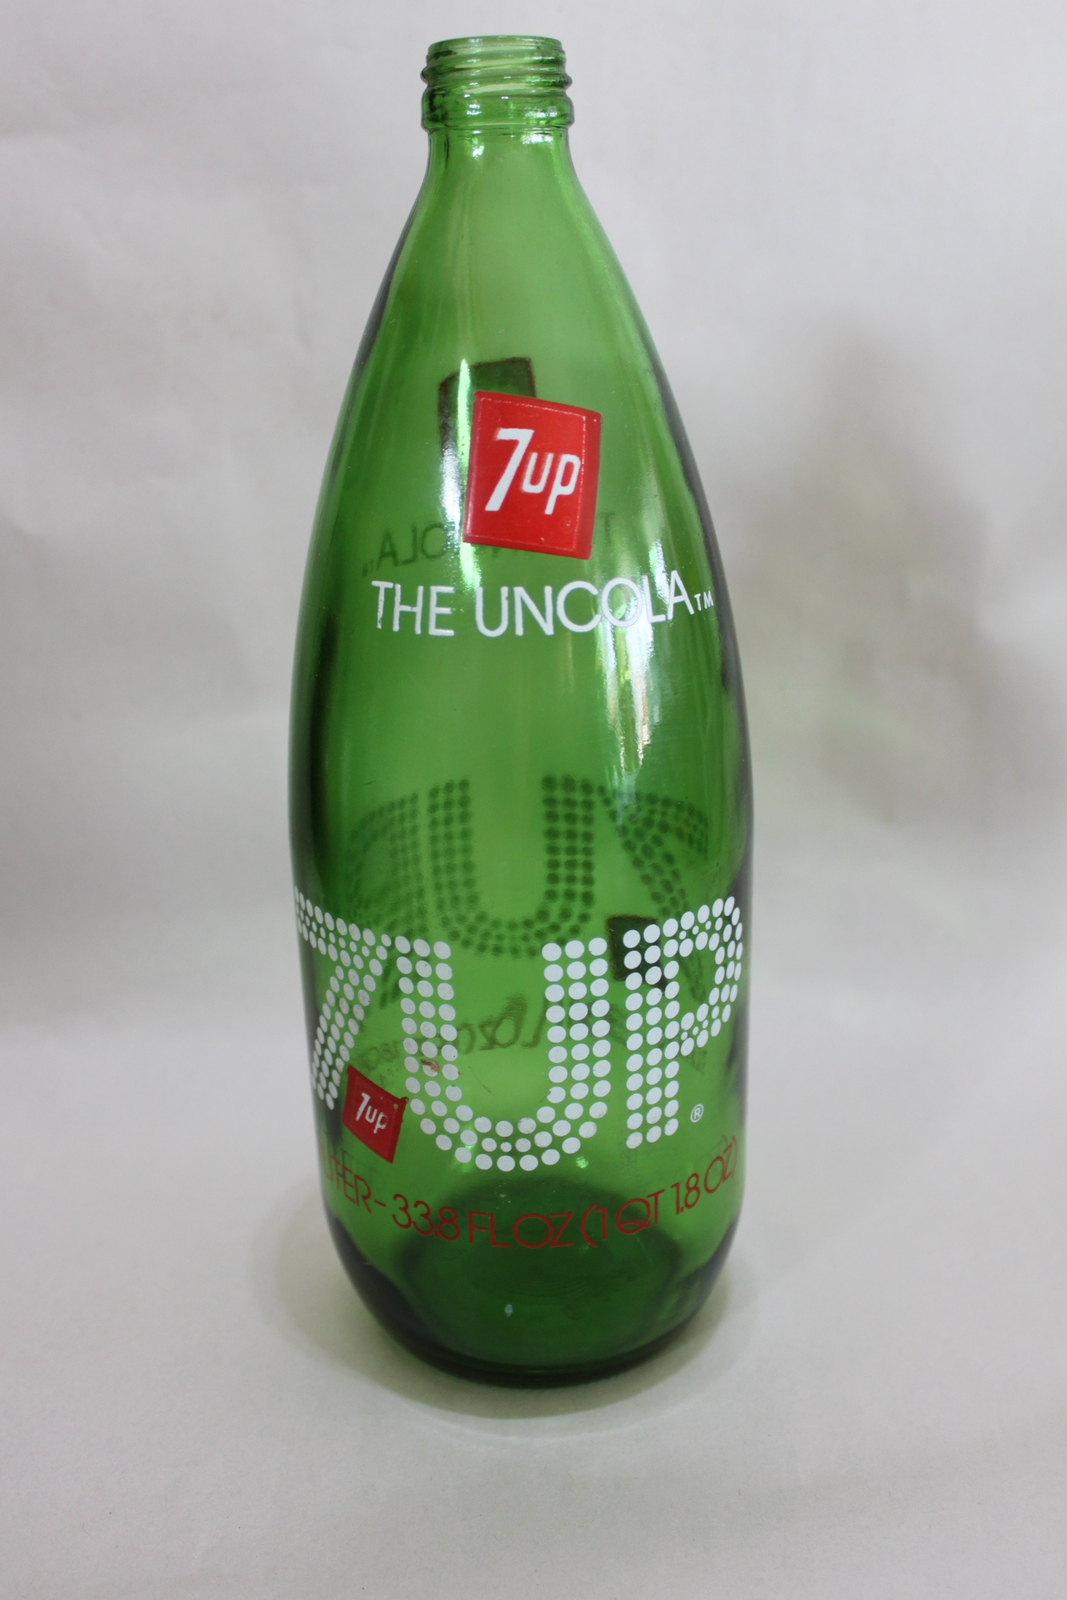 Vintage Empty Green Glass 7up Bottle 1 Liter